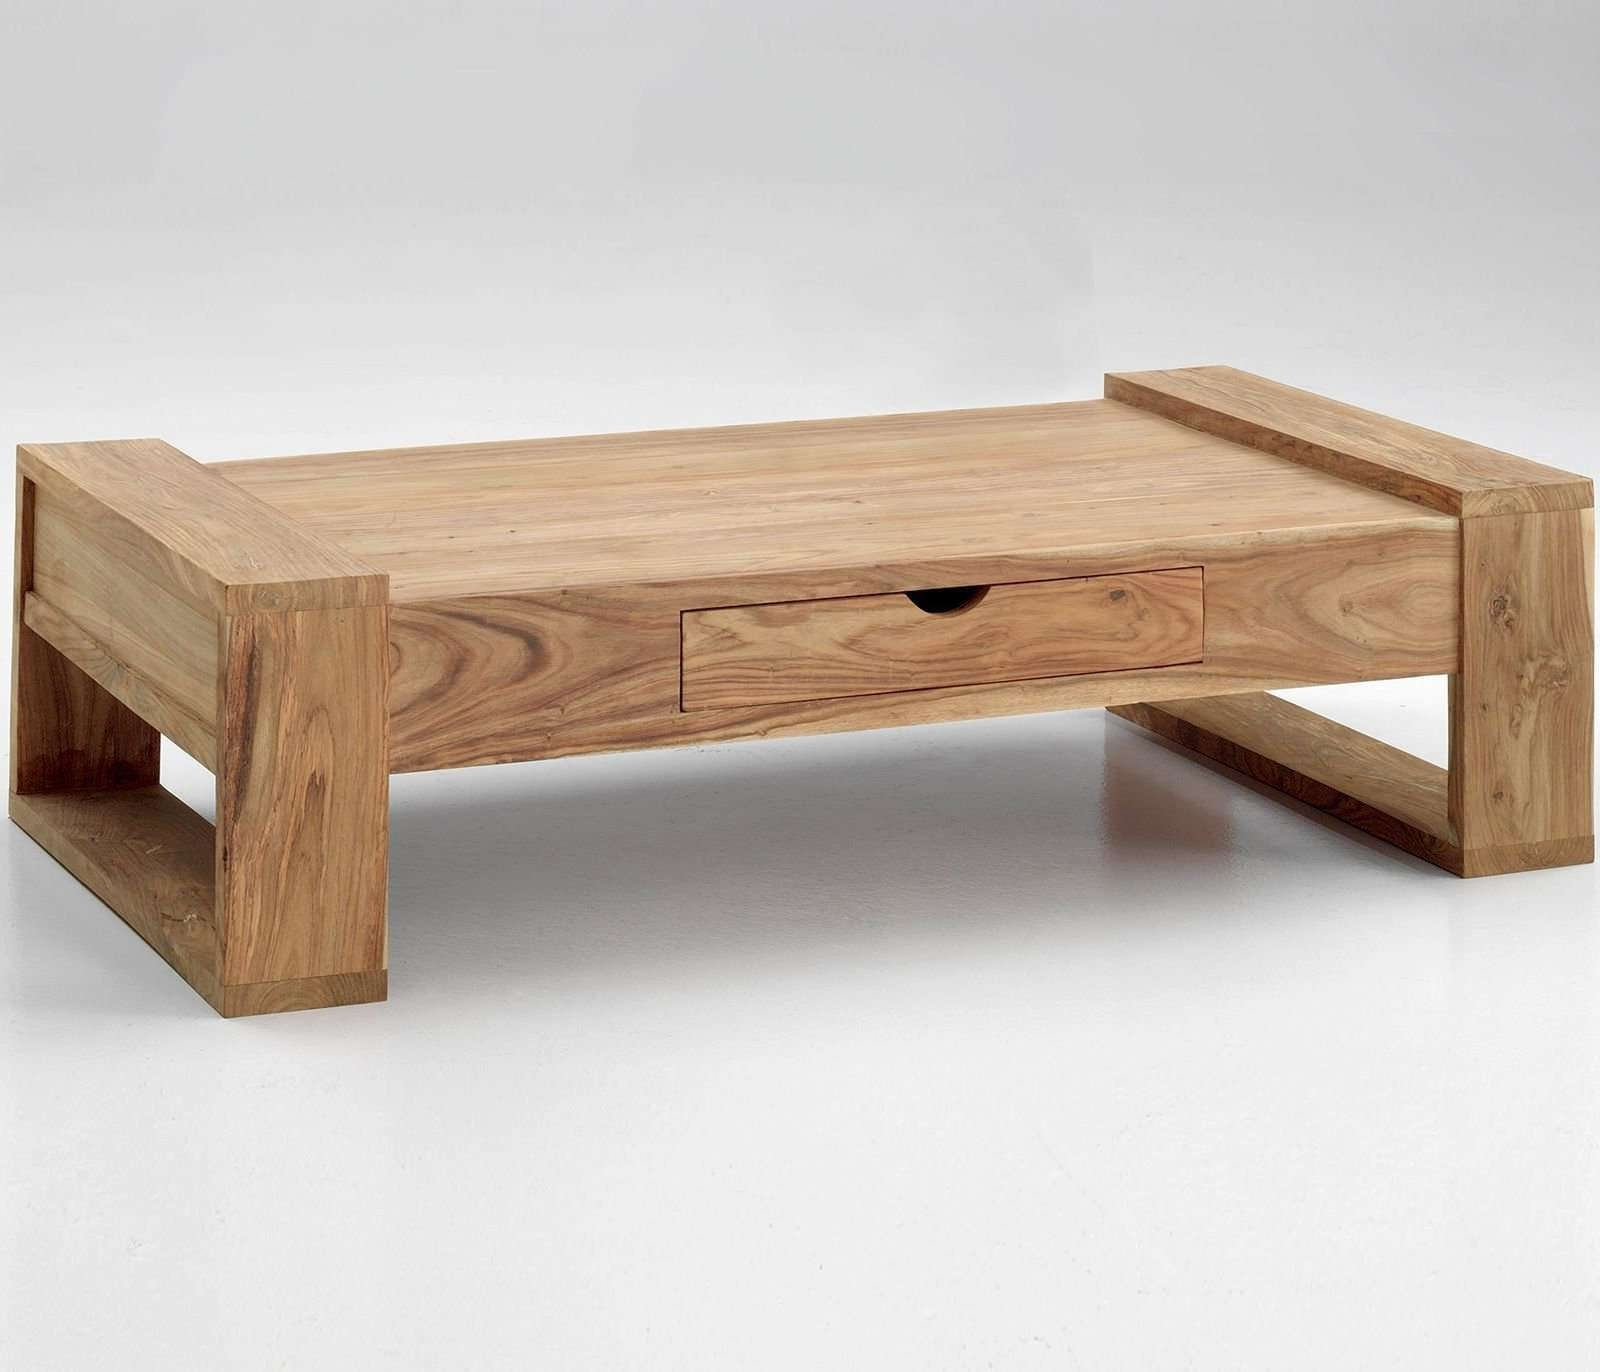 Newest Unique Coffee Tables Throughout Coffee Tables : Small Unique Coffee Tables Contemporary Round (View 14 of 20)